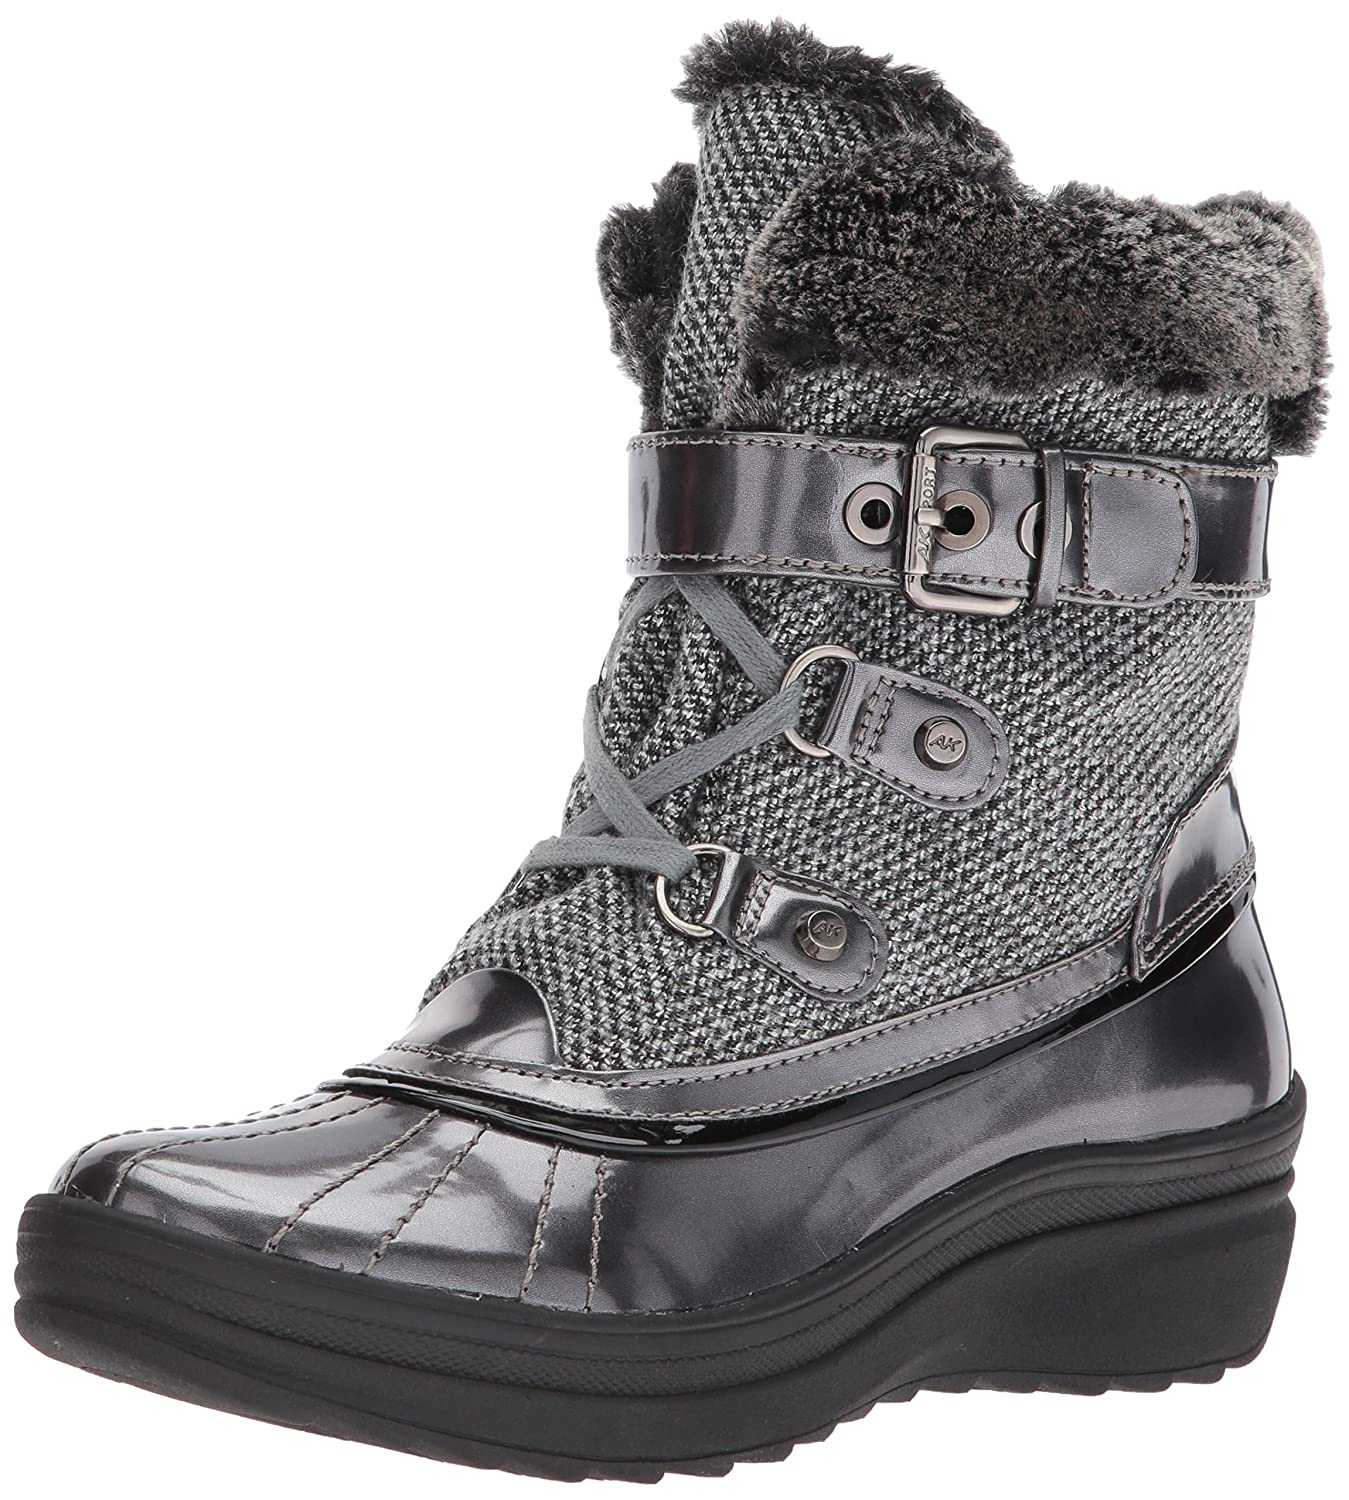 Anne Klein Women's Gallup Fabric Snow Shoe B071NNVNKN 8.5 B(M) US|Grey/Multi Fabric